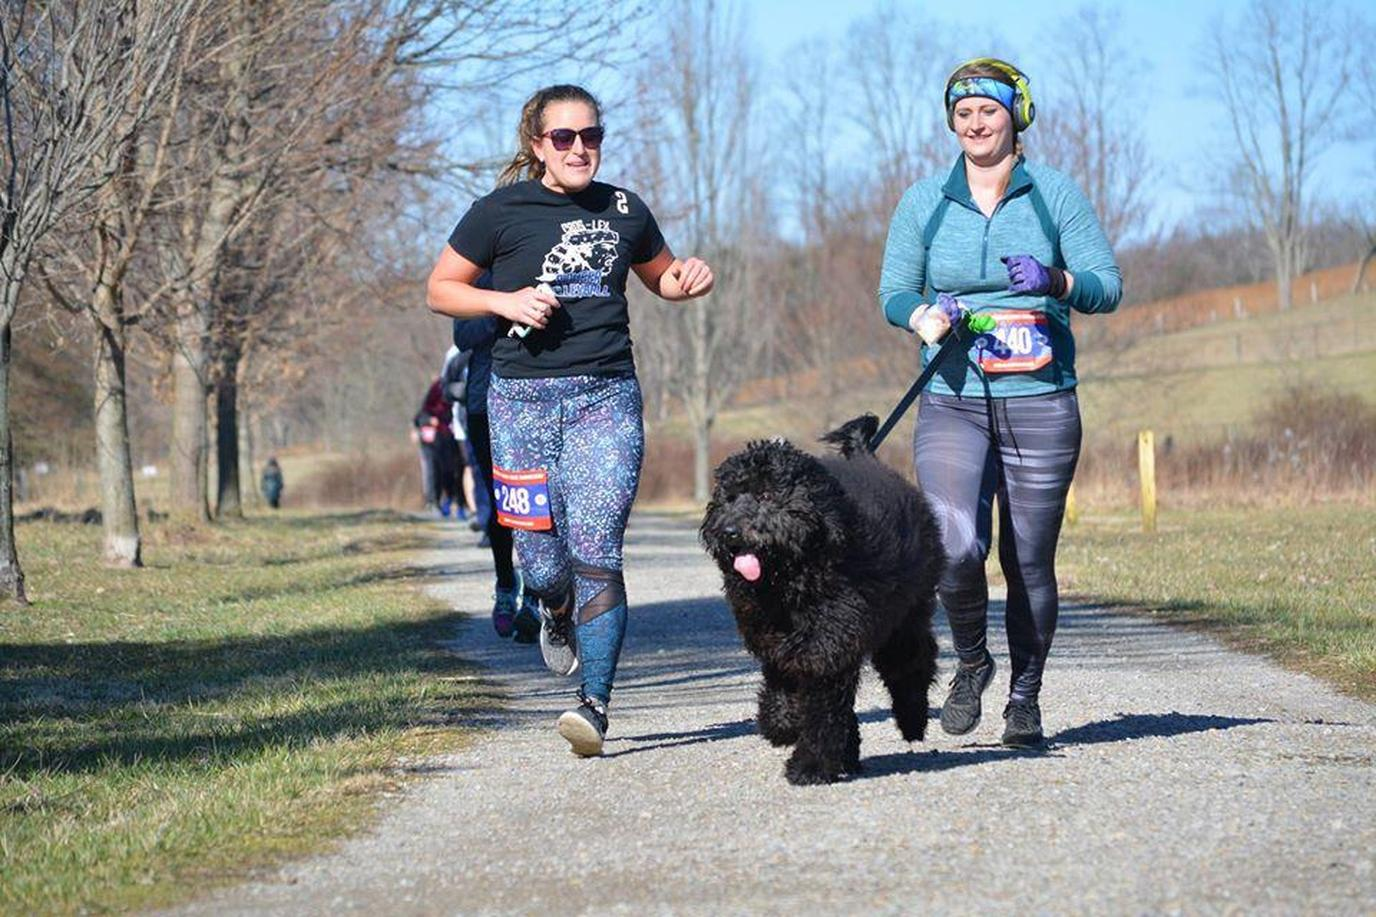 Two Women Run Down a Paved Trail With a Dog During a Pet-Friendly Spring Run in Zanesville.